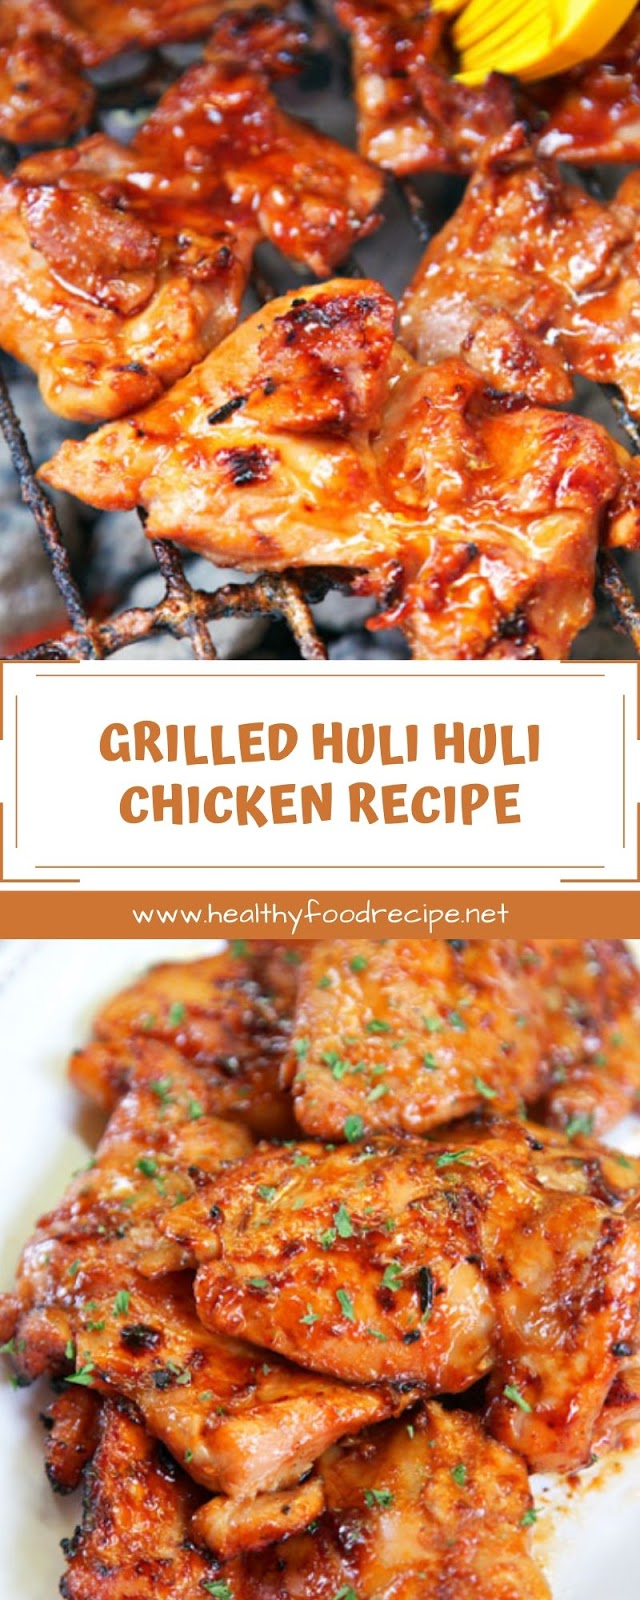 GRILLED HULI HULI CHICKEN RECIPE